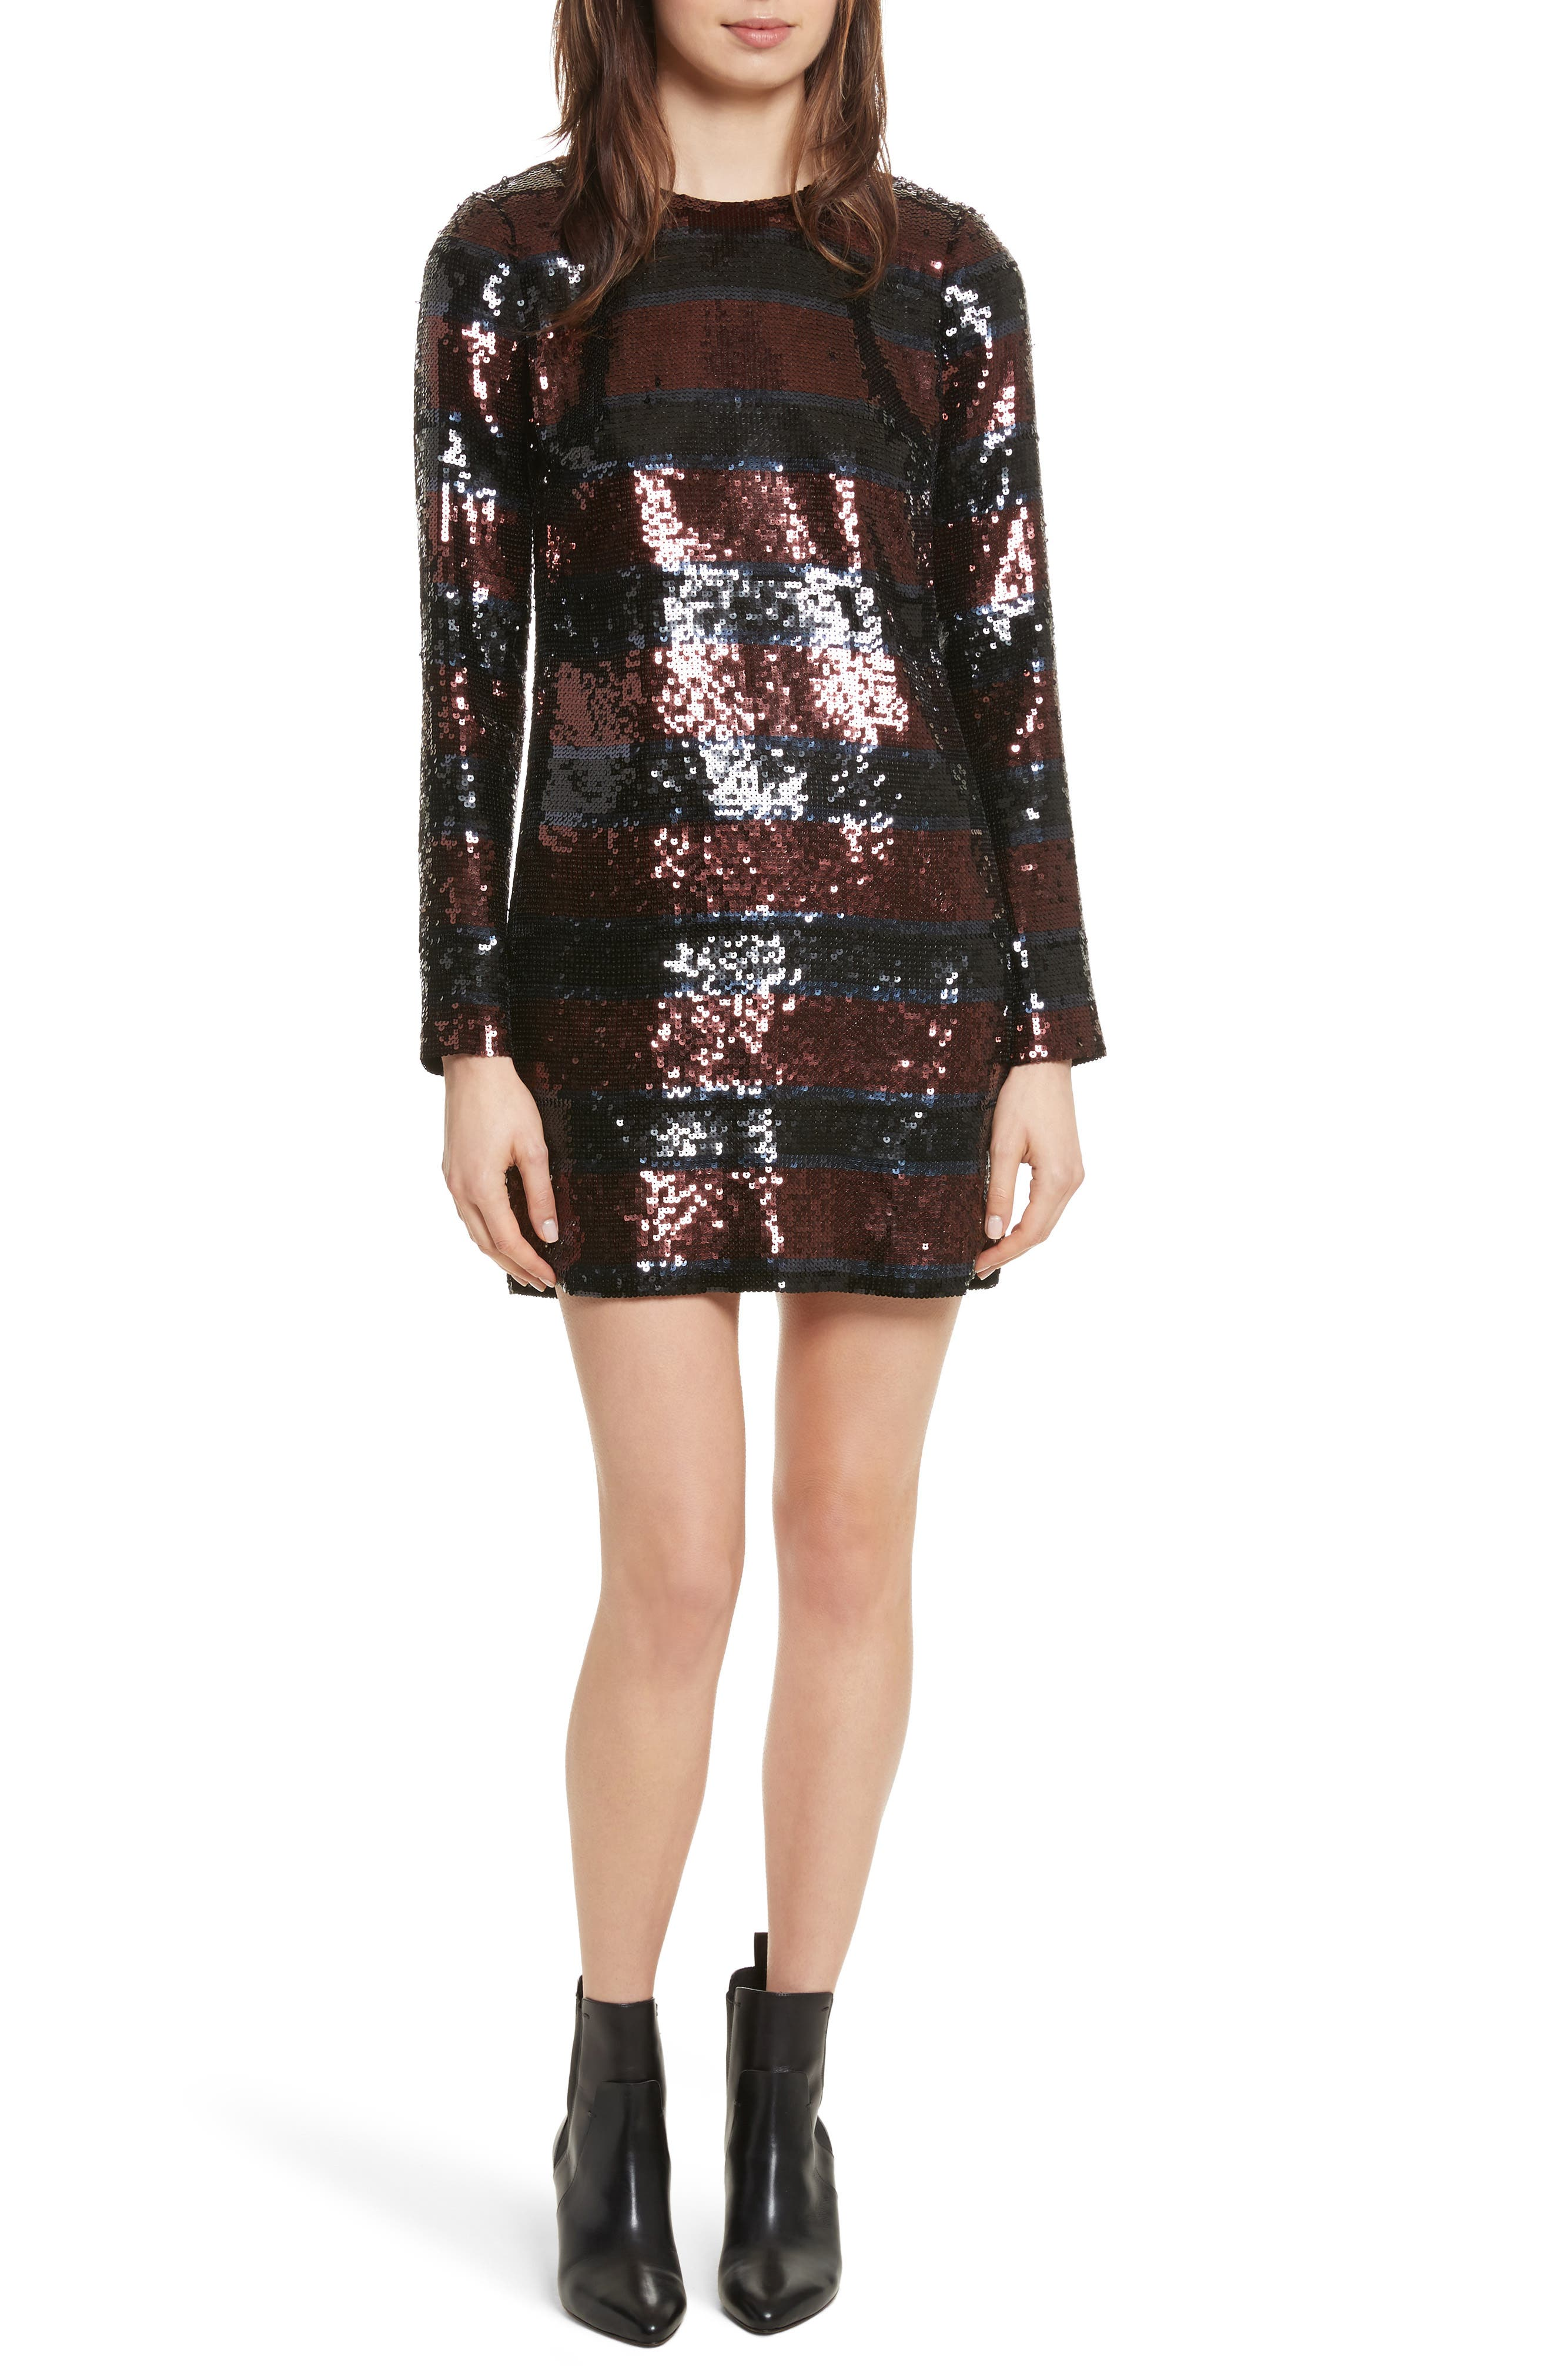 Breakers Sequin Dress,                         Main,                         color, Dark Red/ Black